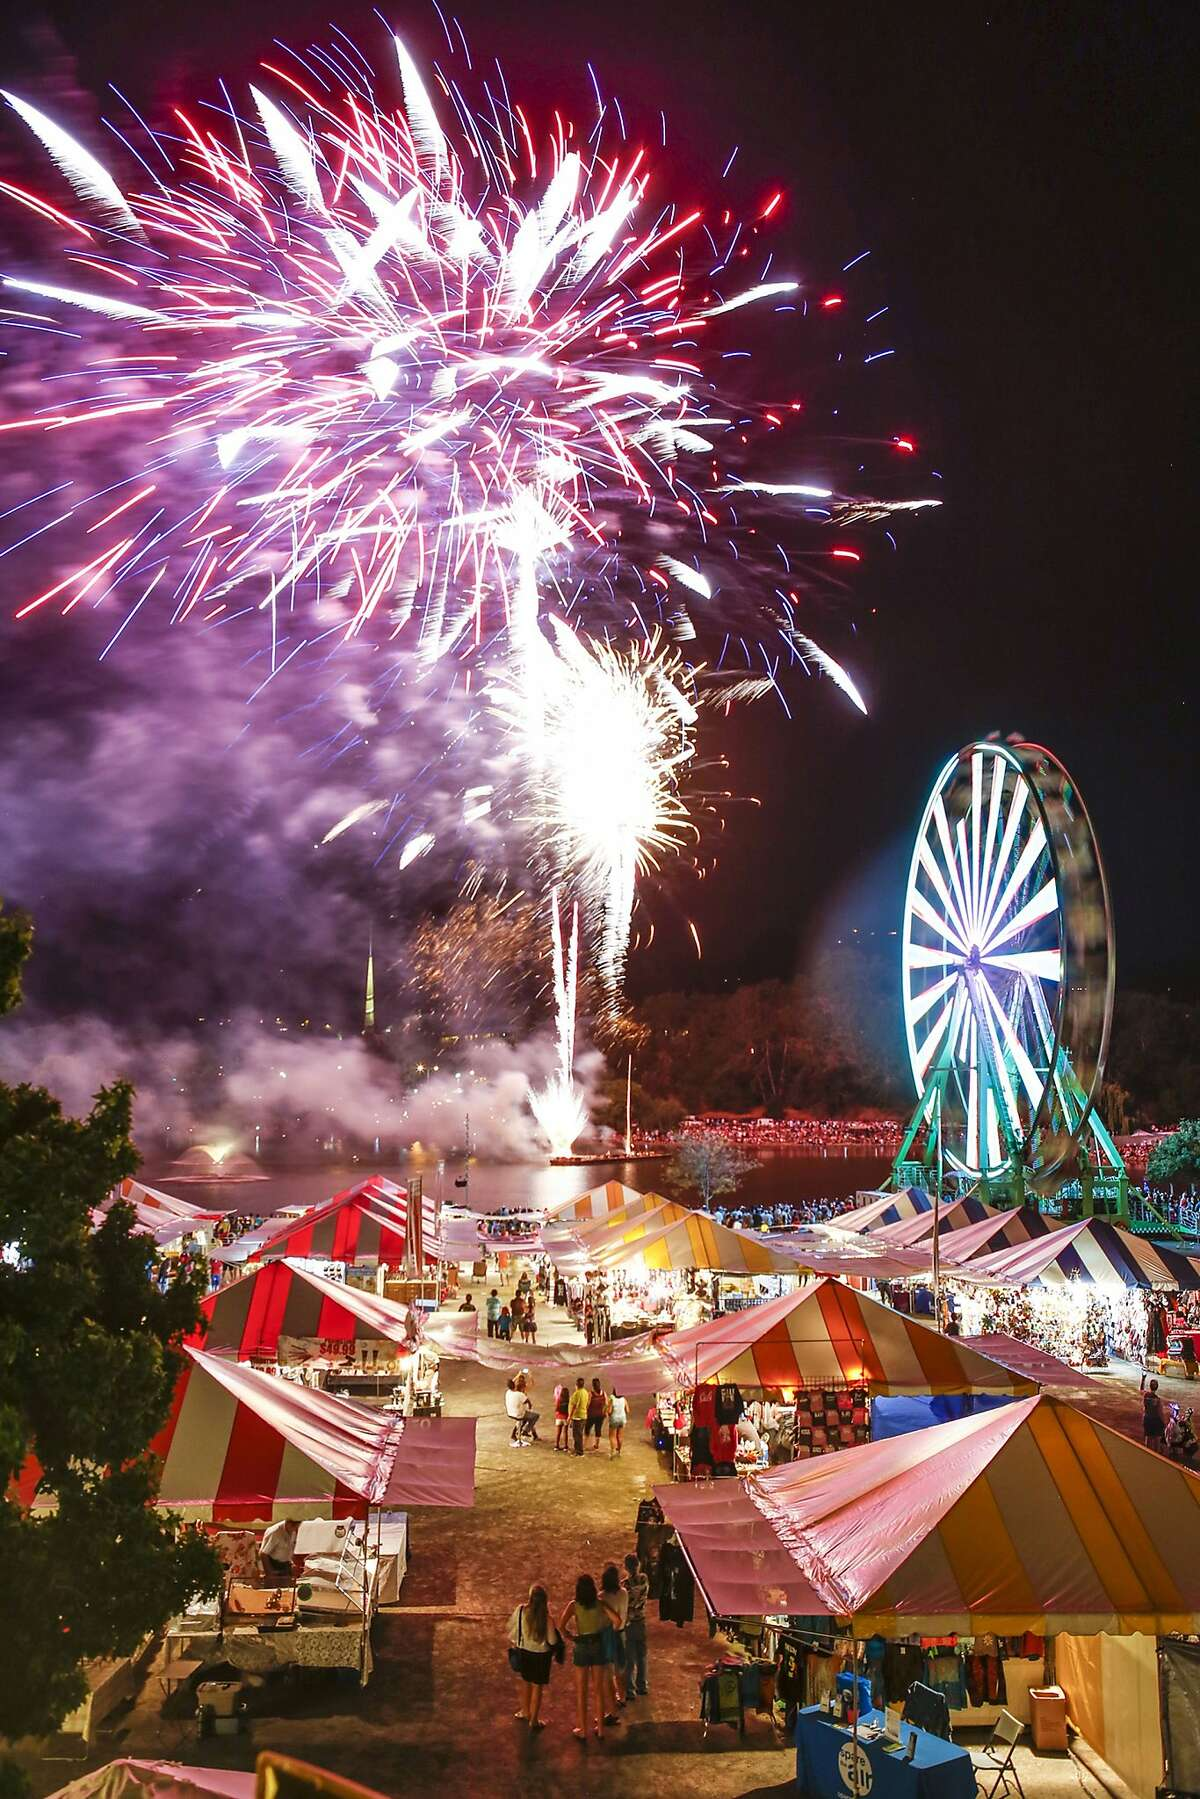 MARIN COUNTY FAIR GETS SET TO DELIVER FIVE DAYS OF NON STOP FUN WEDNESDAY TO SUNDAY JULY 1 - 5